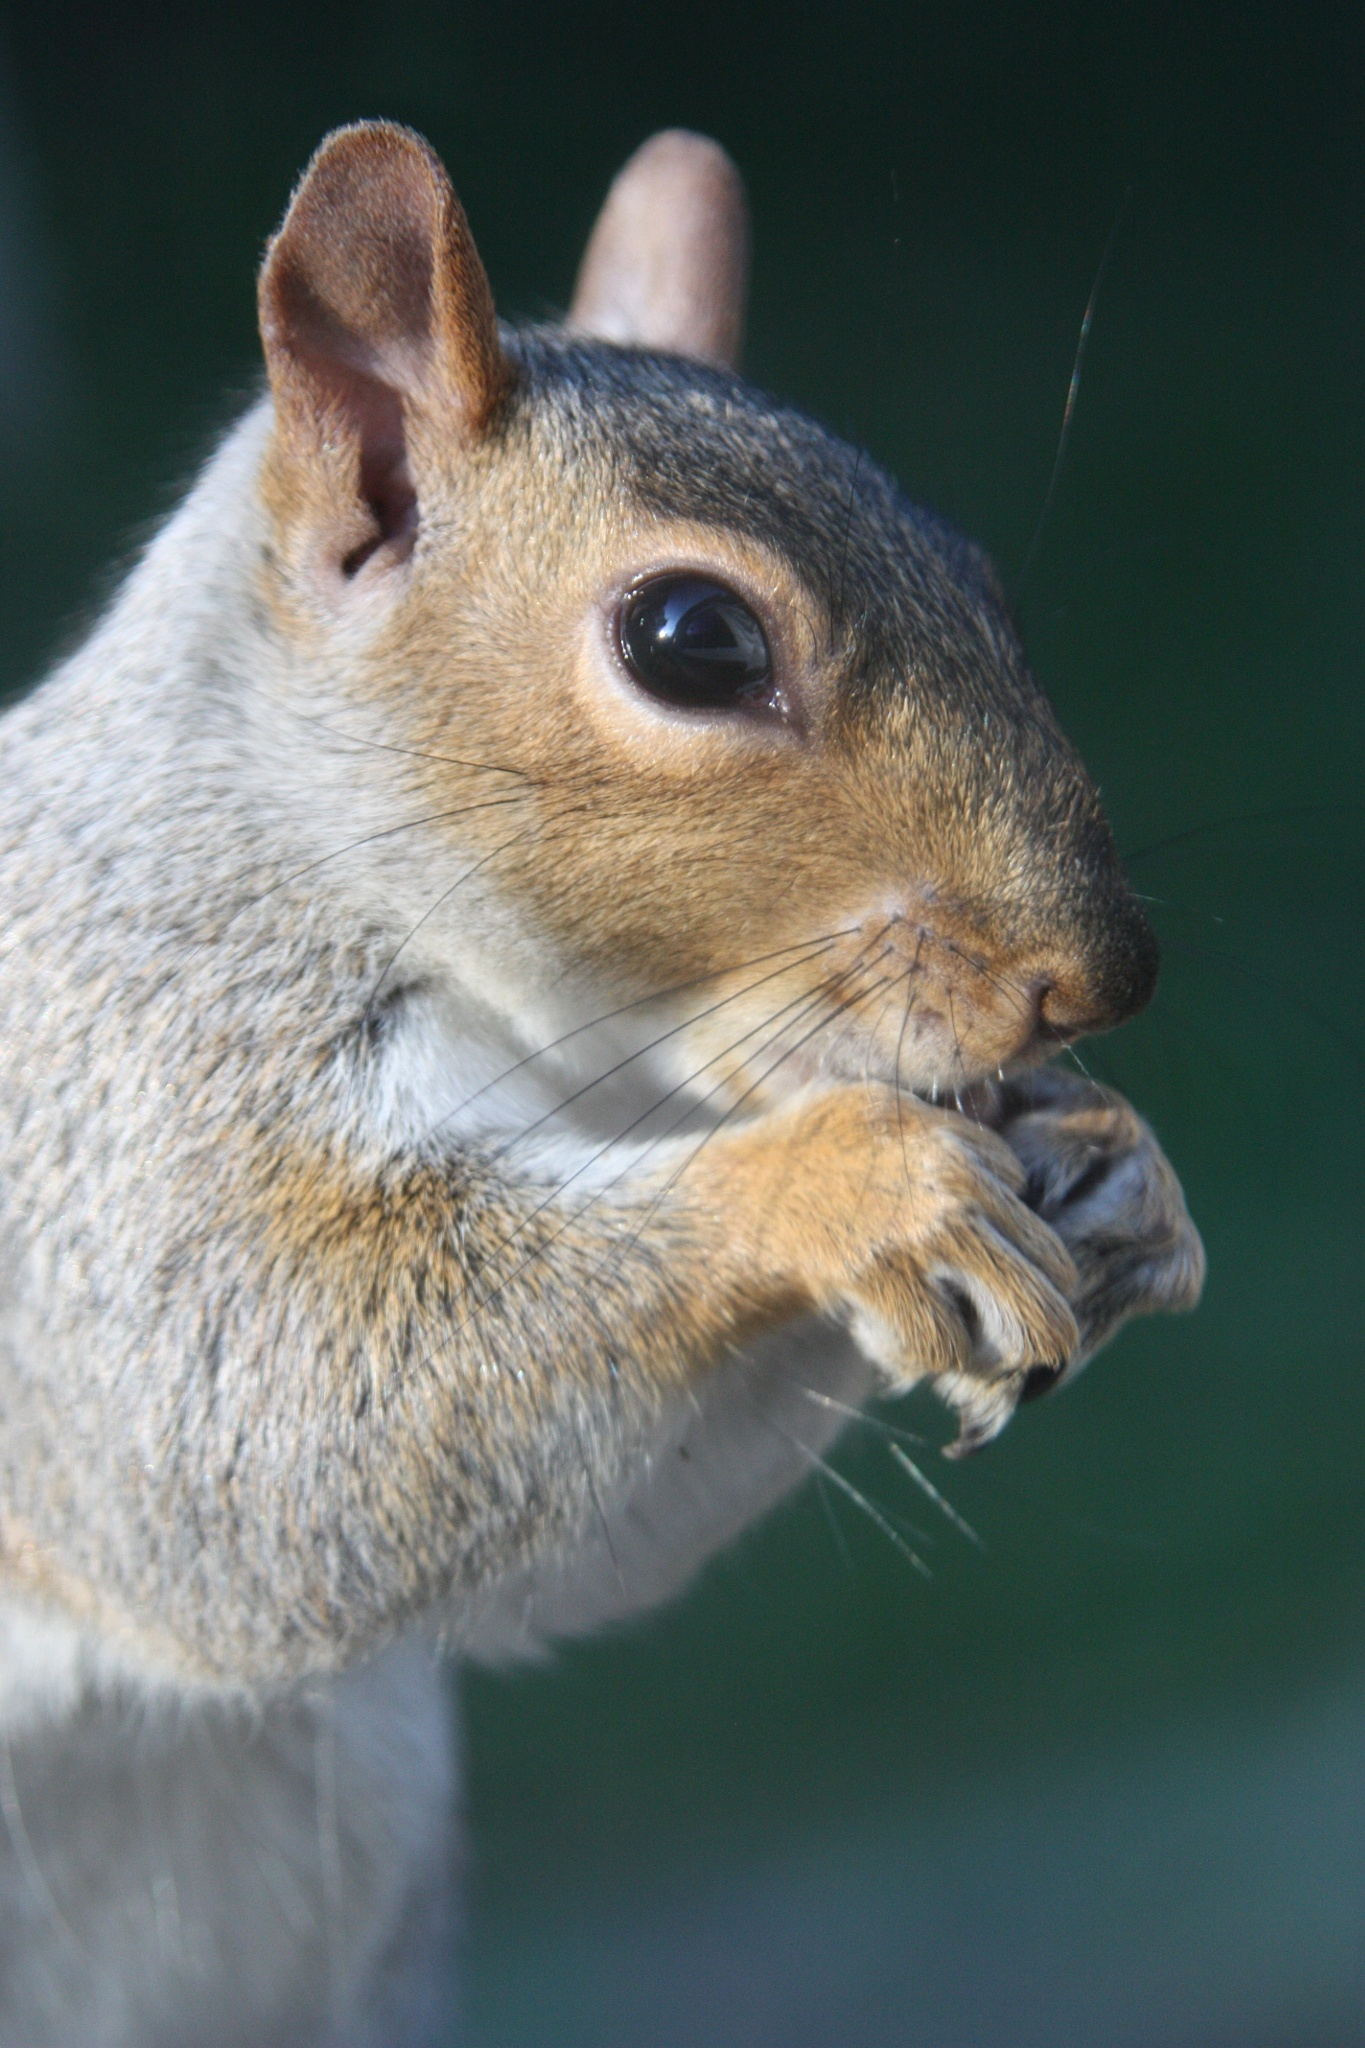 squirrel  by Mark Evers